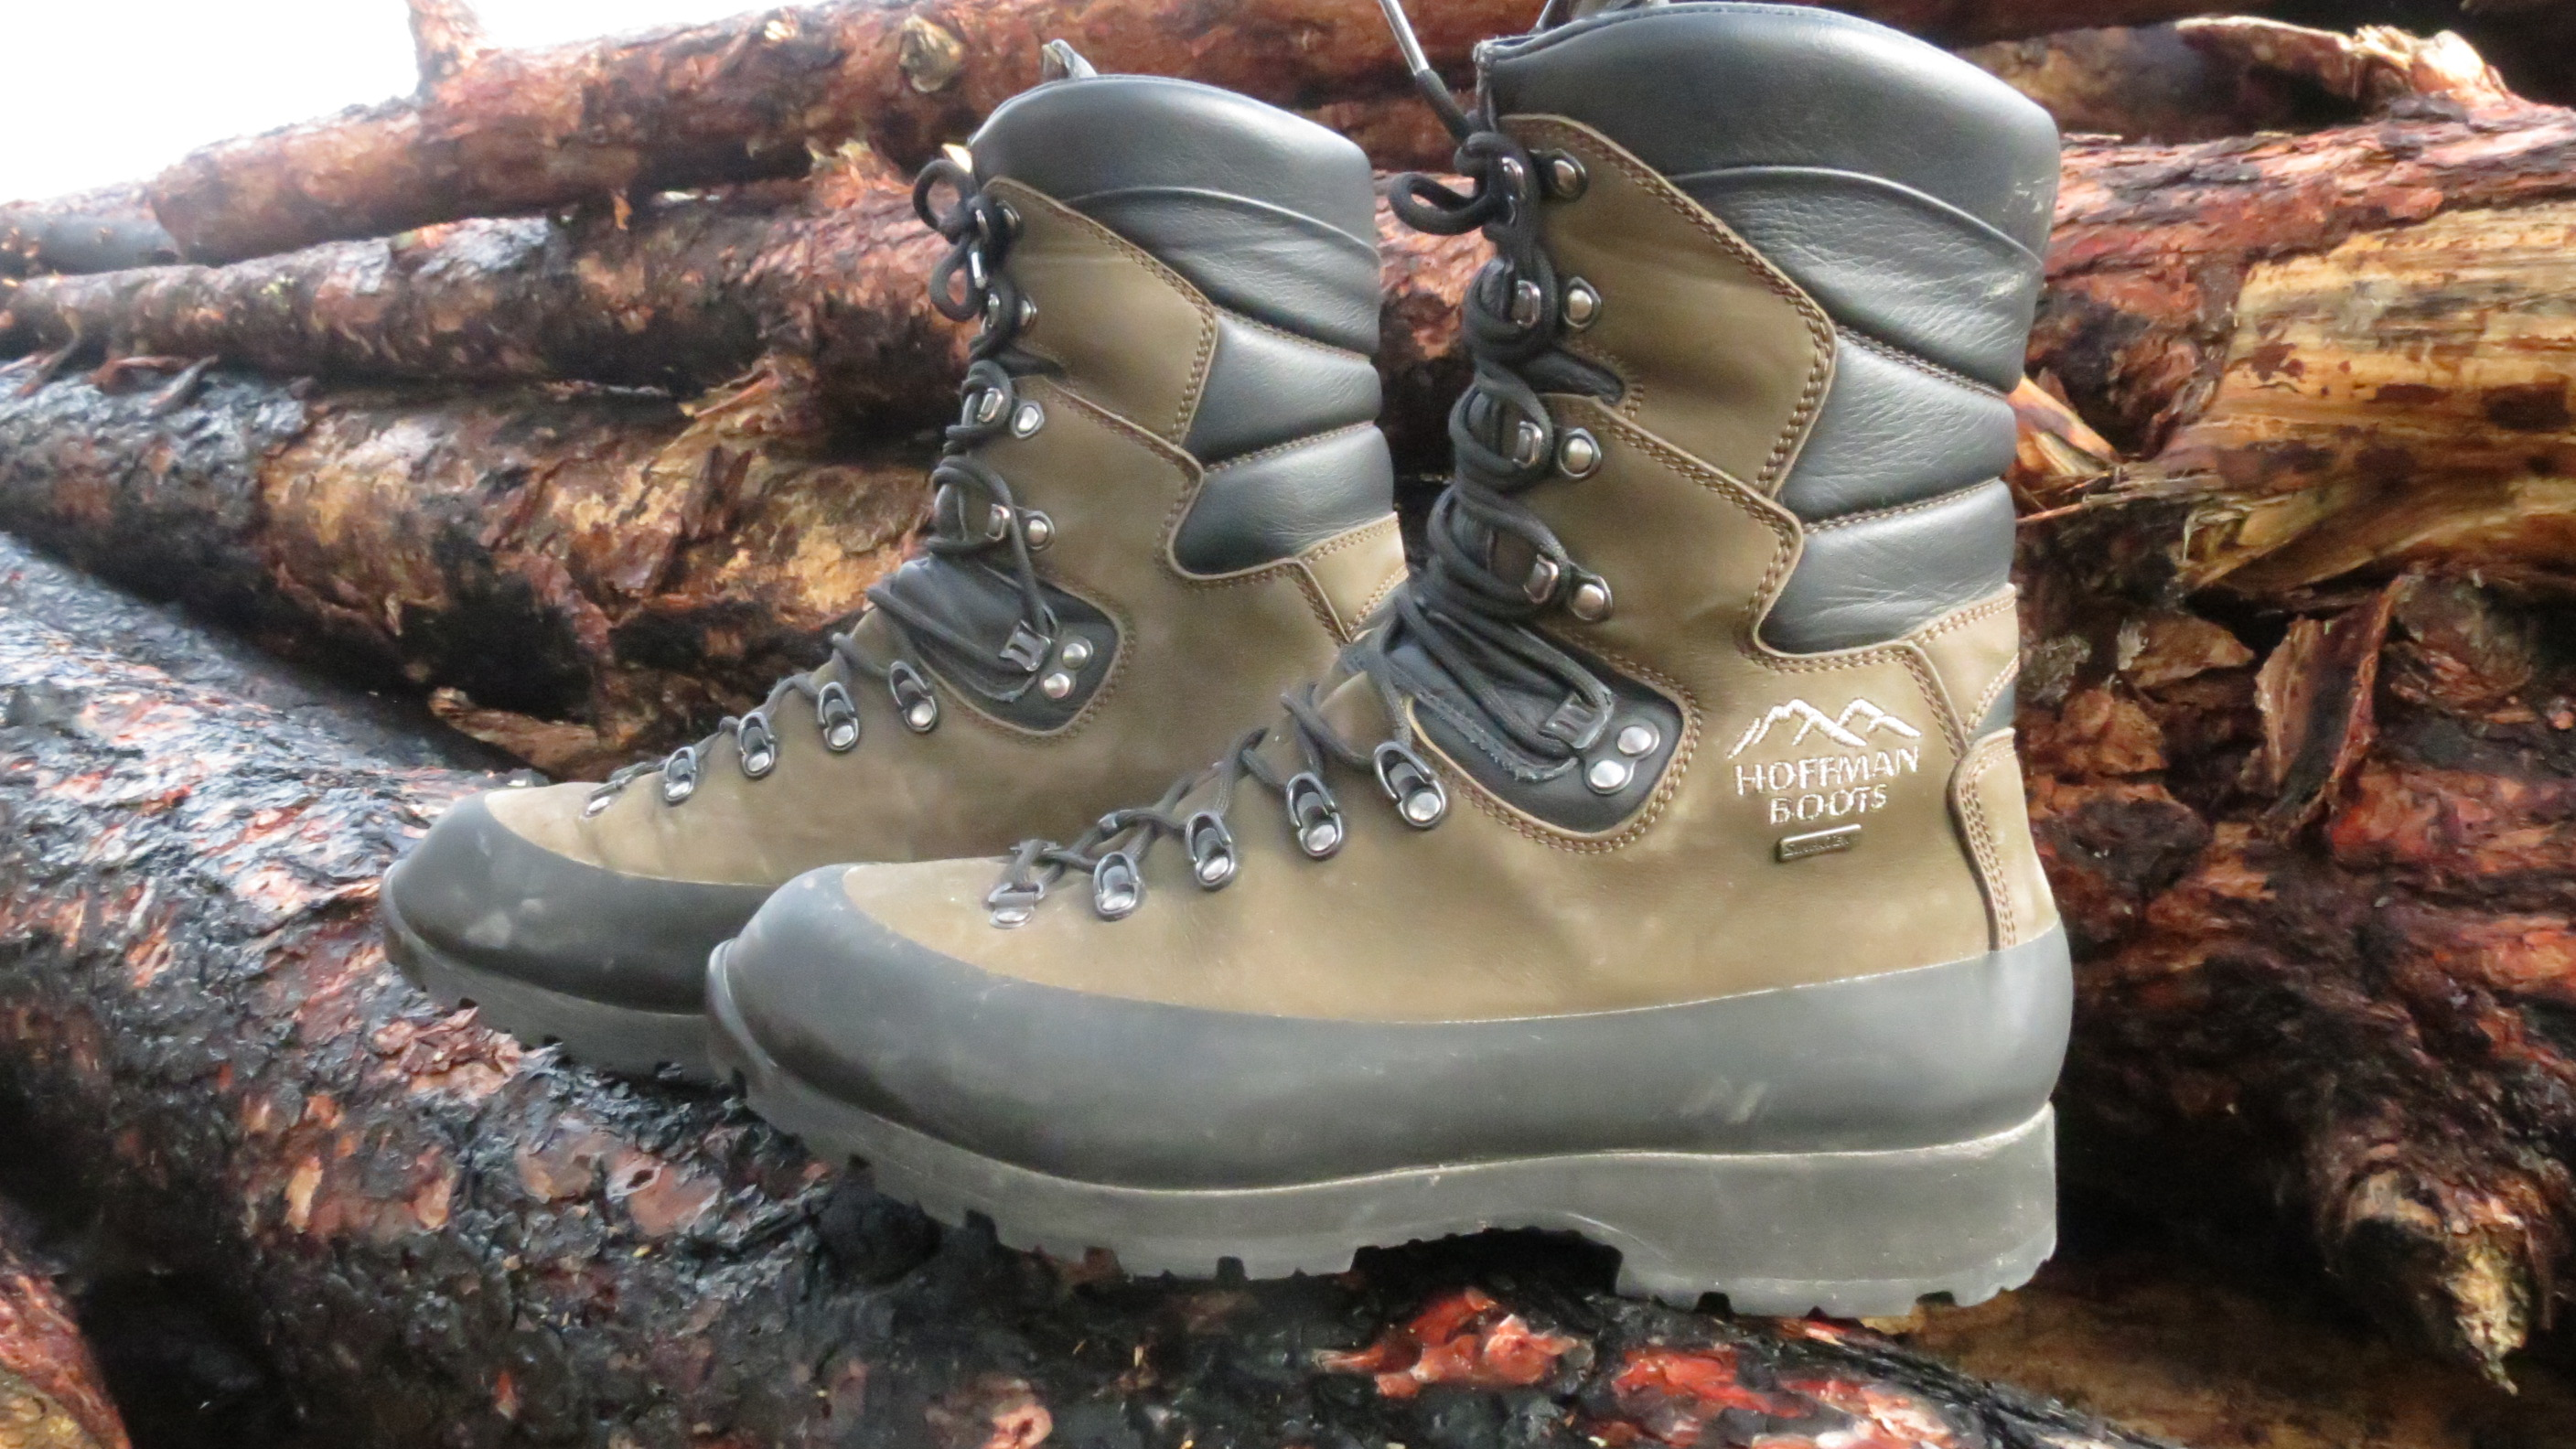 Reviewing Hoffman Explorer Boots.